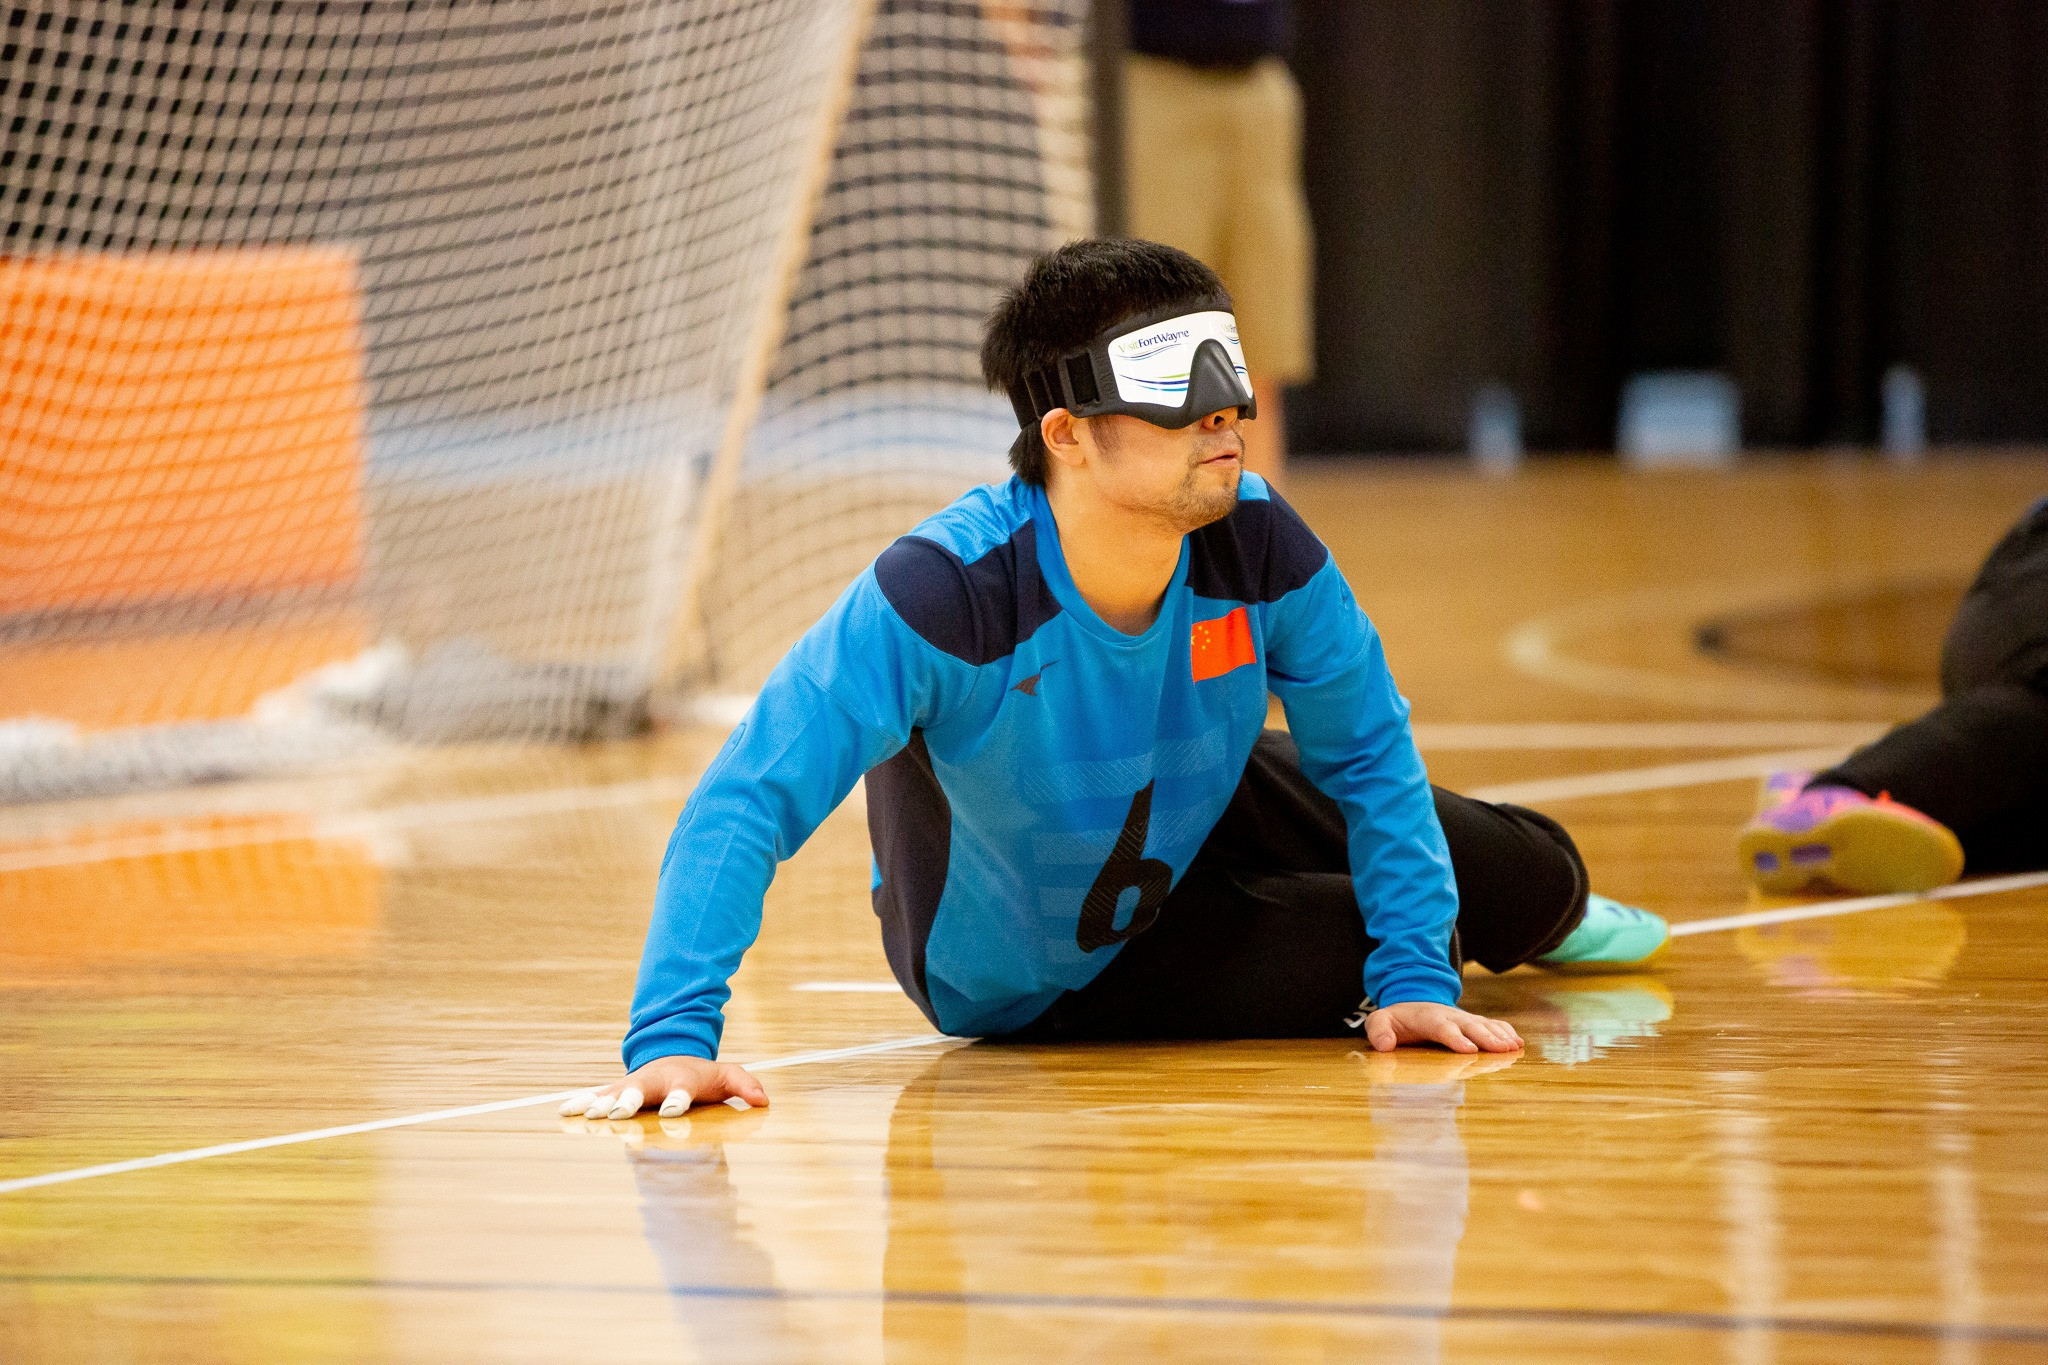 Tokyo 2020 place closer for United States after reach quarter-finals at IBSA Goalball International Qualifier